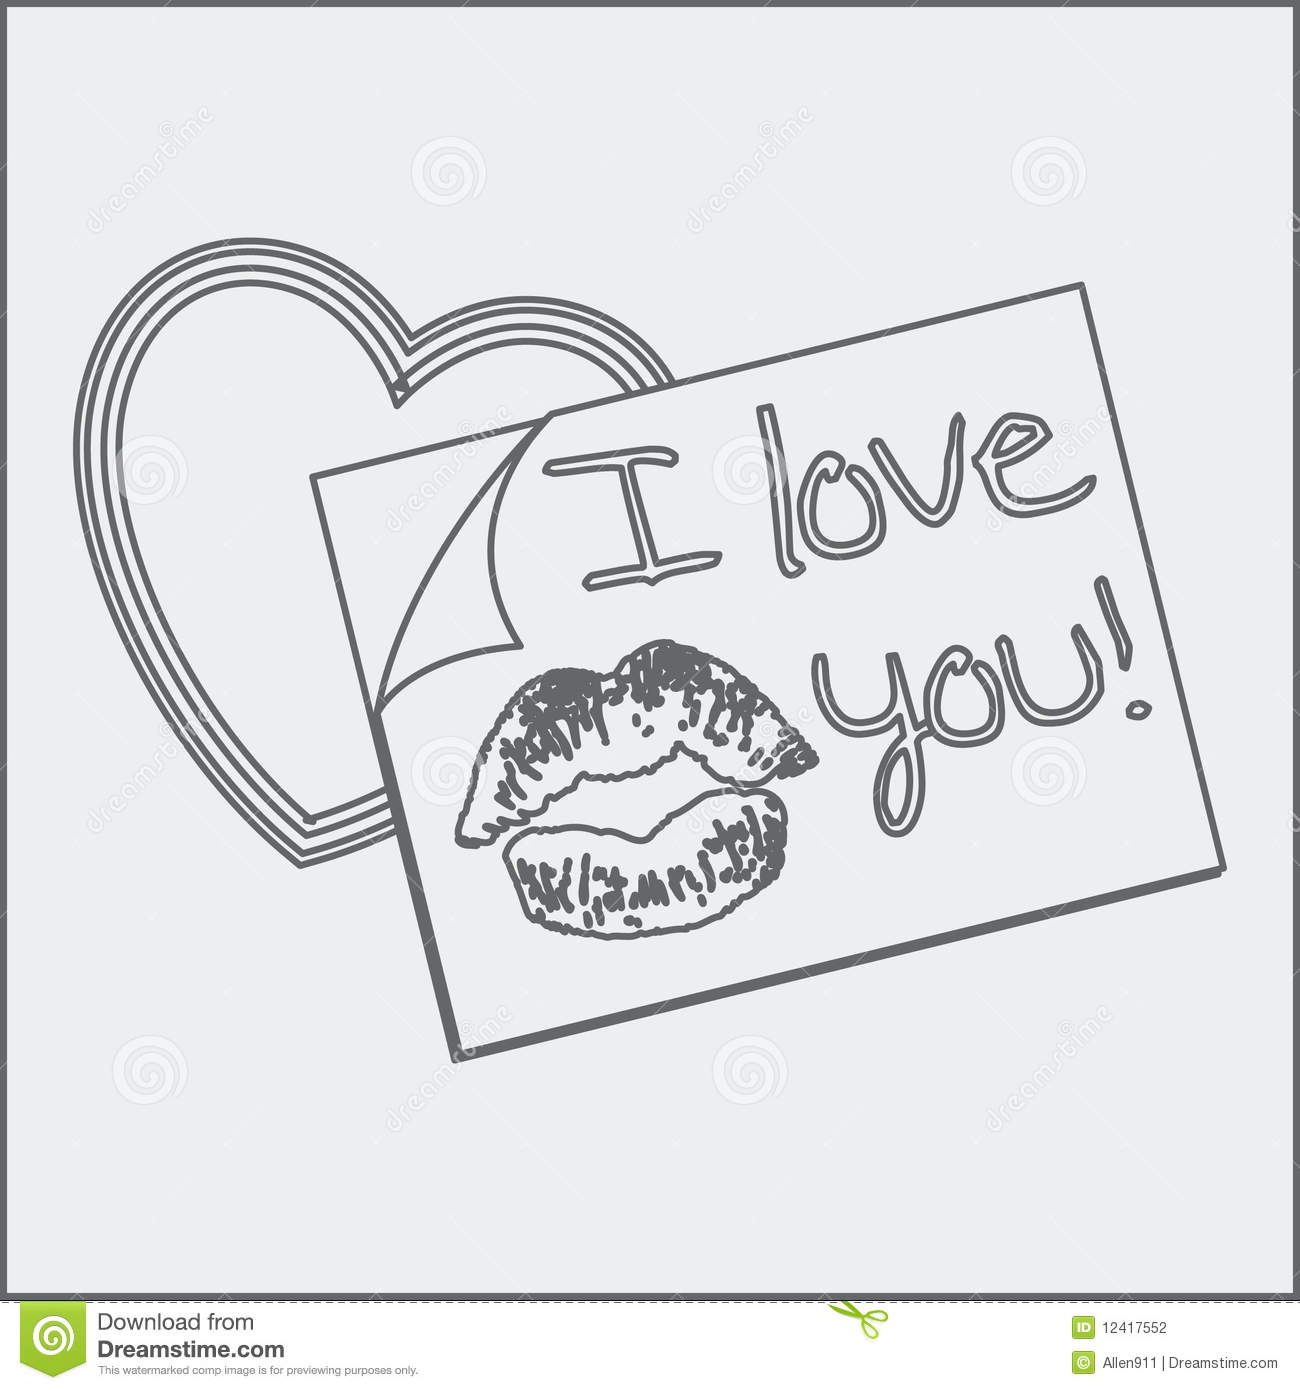 i love you heart drawings - photo #9